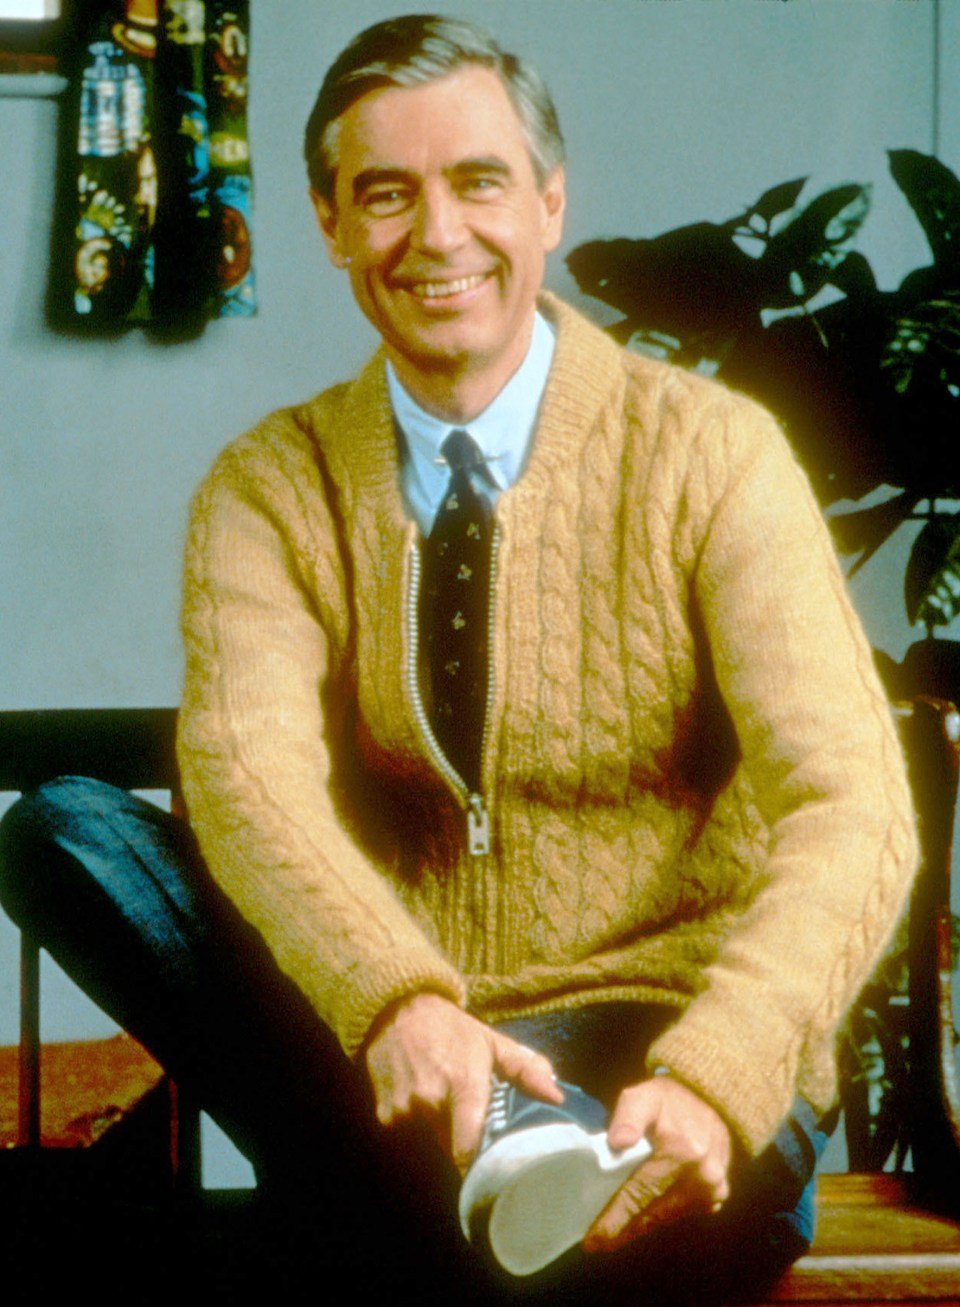 Opinion Mister Rogers Voice Of Reason In The Tumultuous 60s Still Rings True